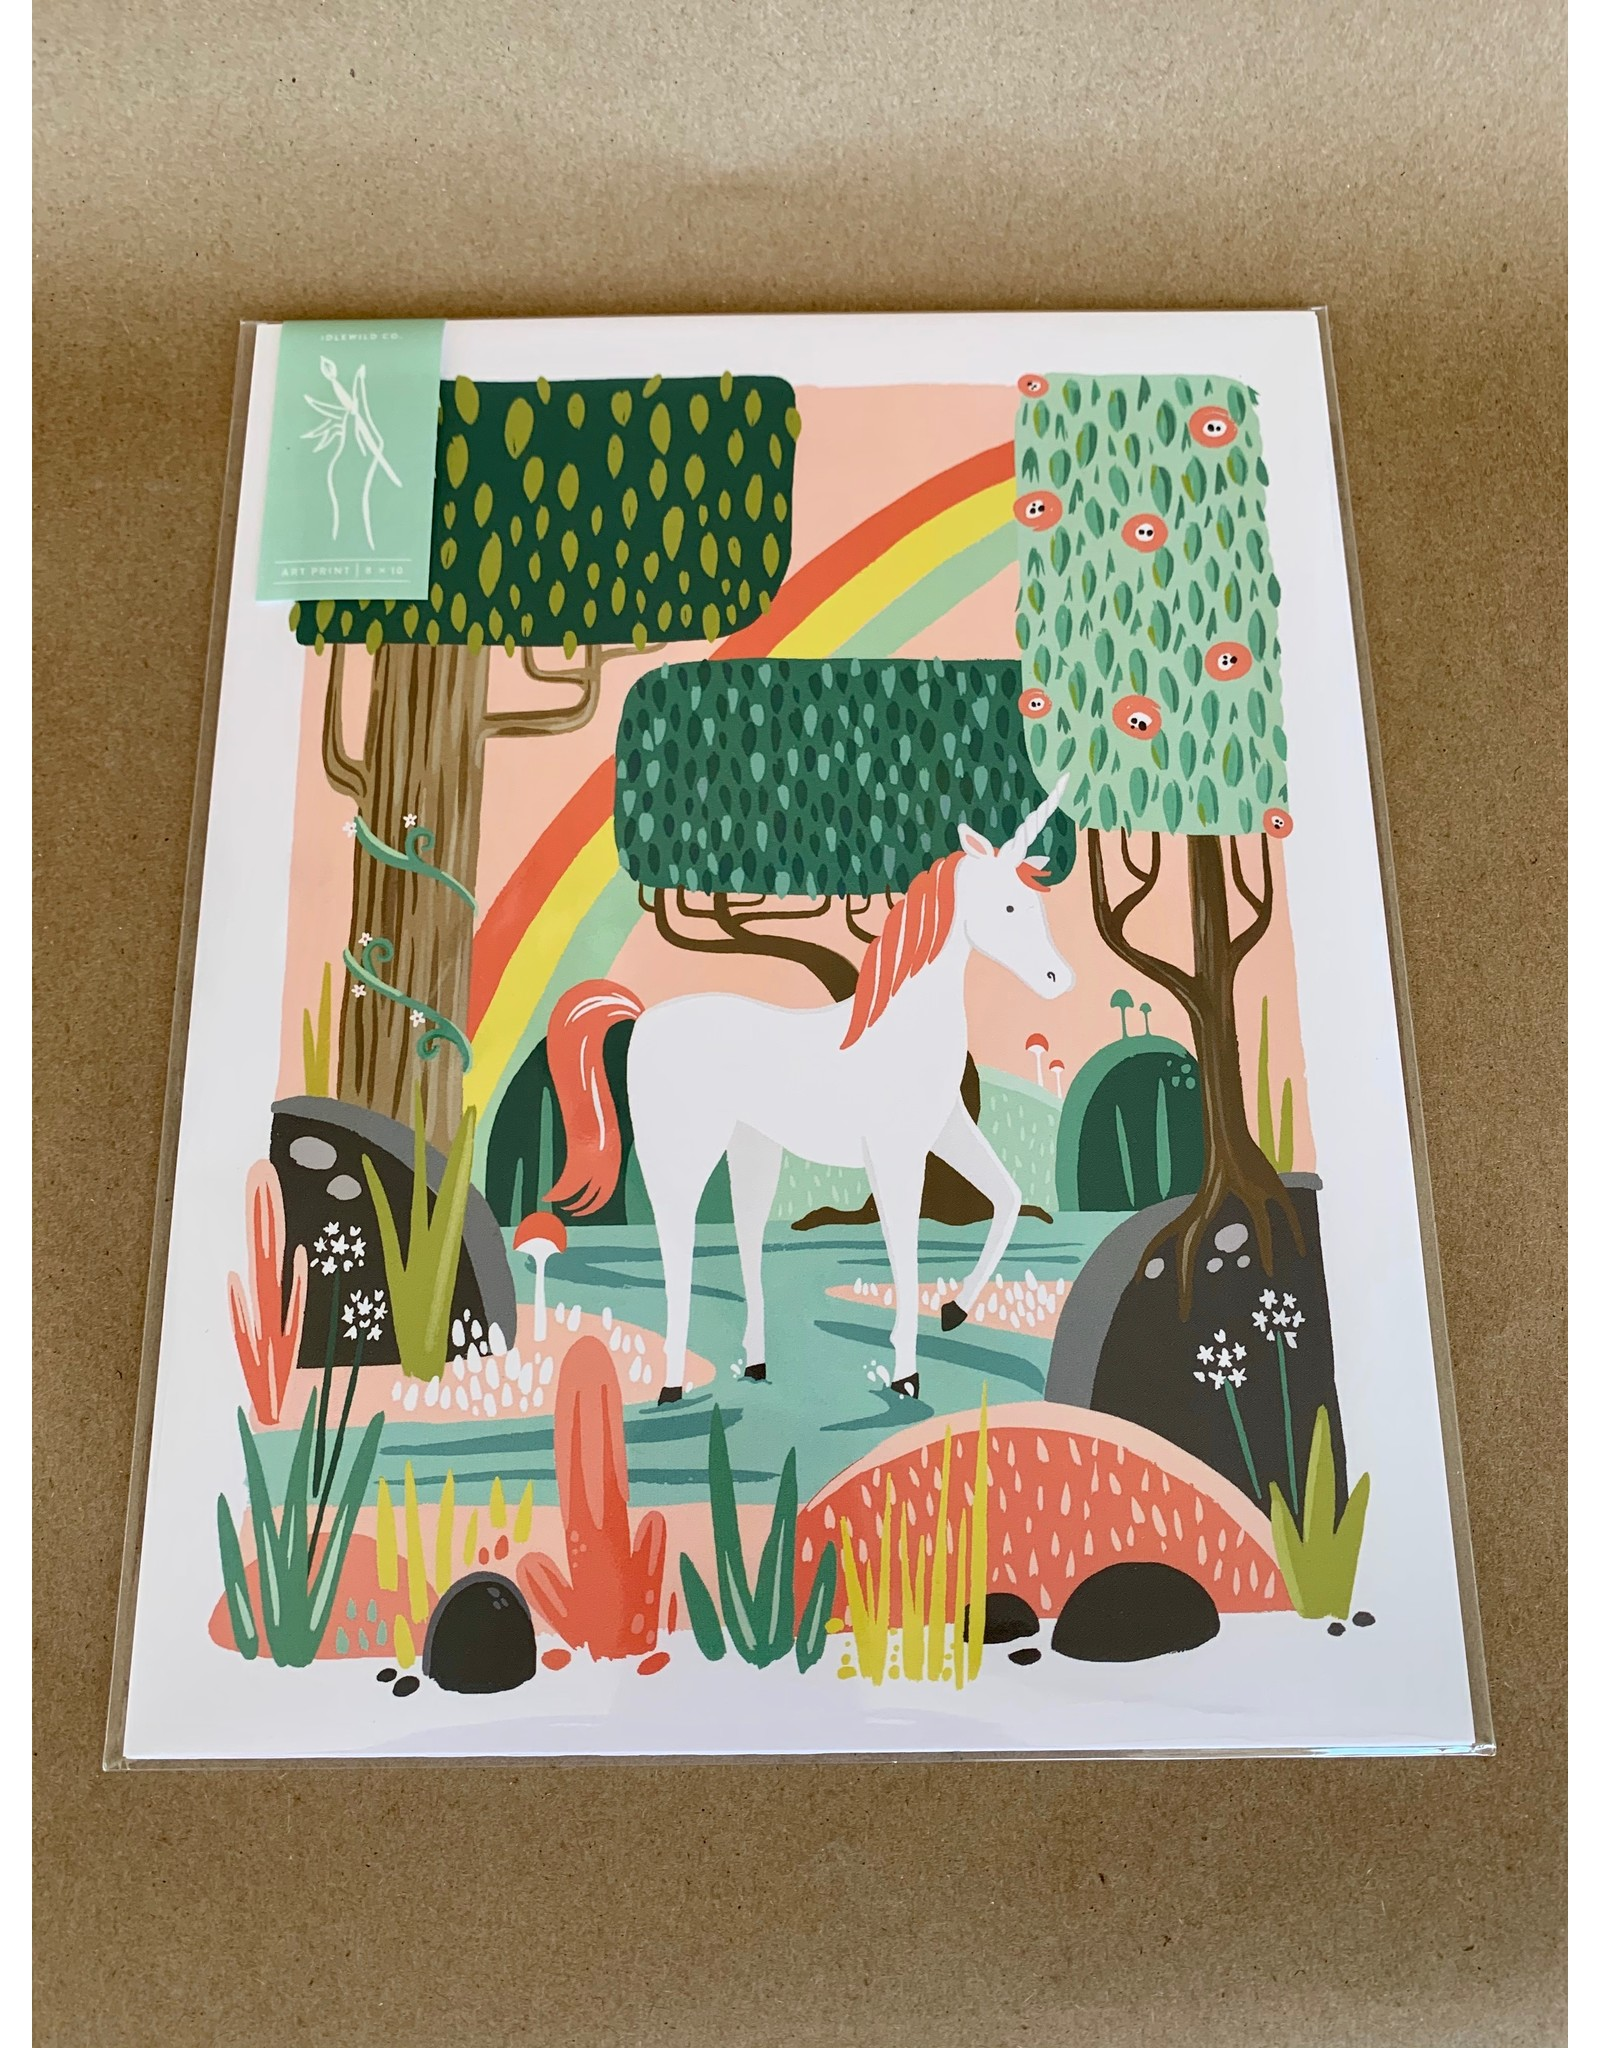 Idlewild Print - 8x10: Unicorn, Home, or Grow Through